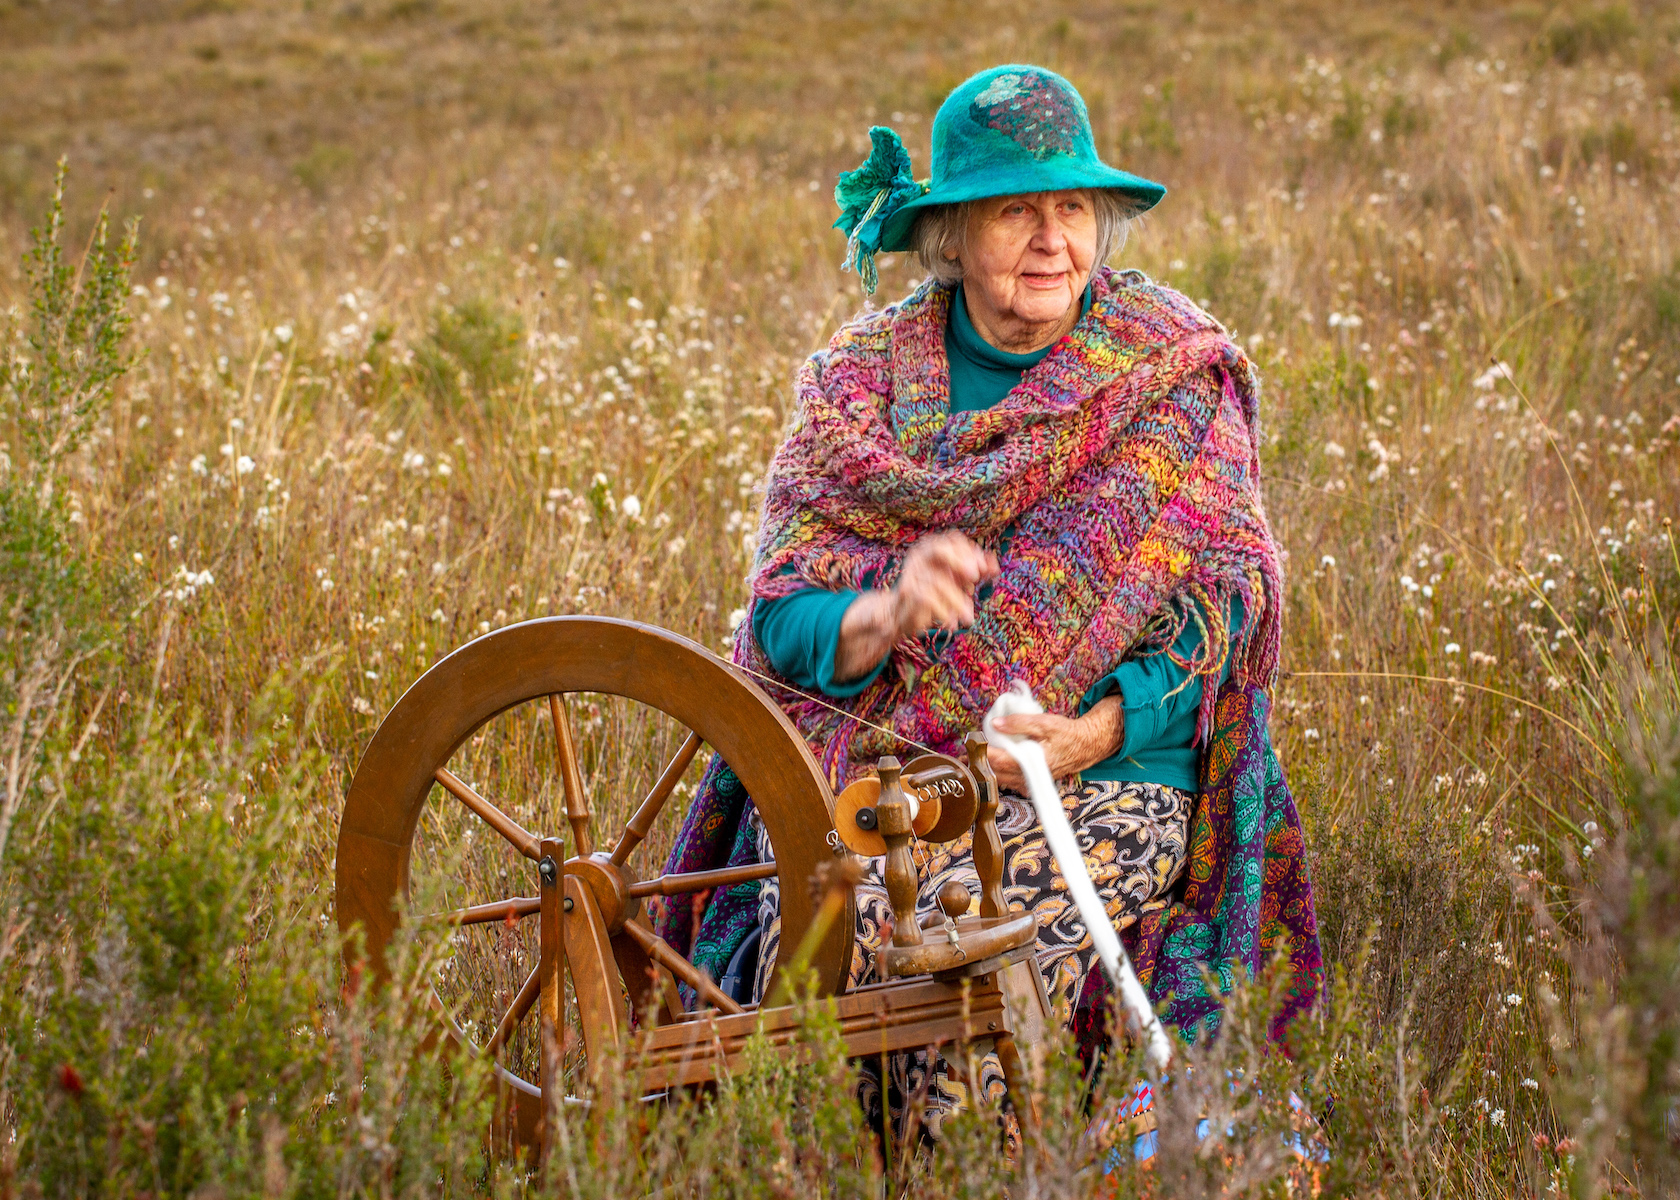 Stratie Stratford-Pearn_Spinning Amongst the Wild Flowers Outside of Zeehan_ Photo By Rebecca Thomson.jpg